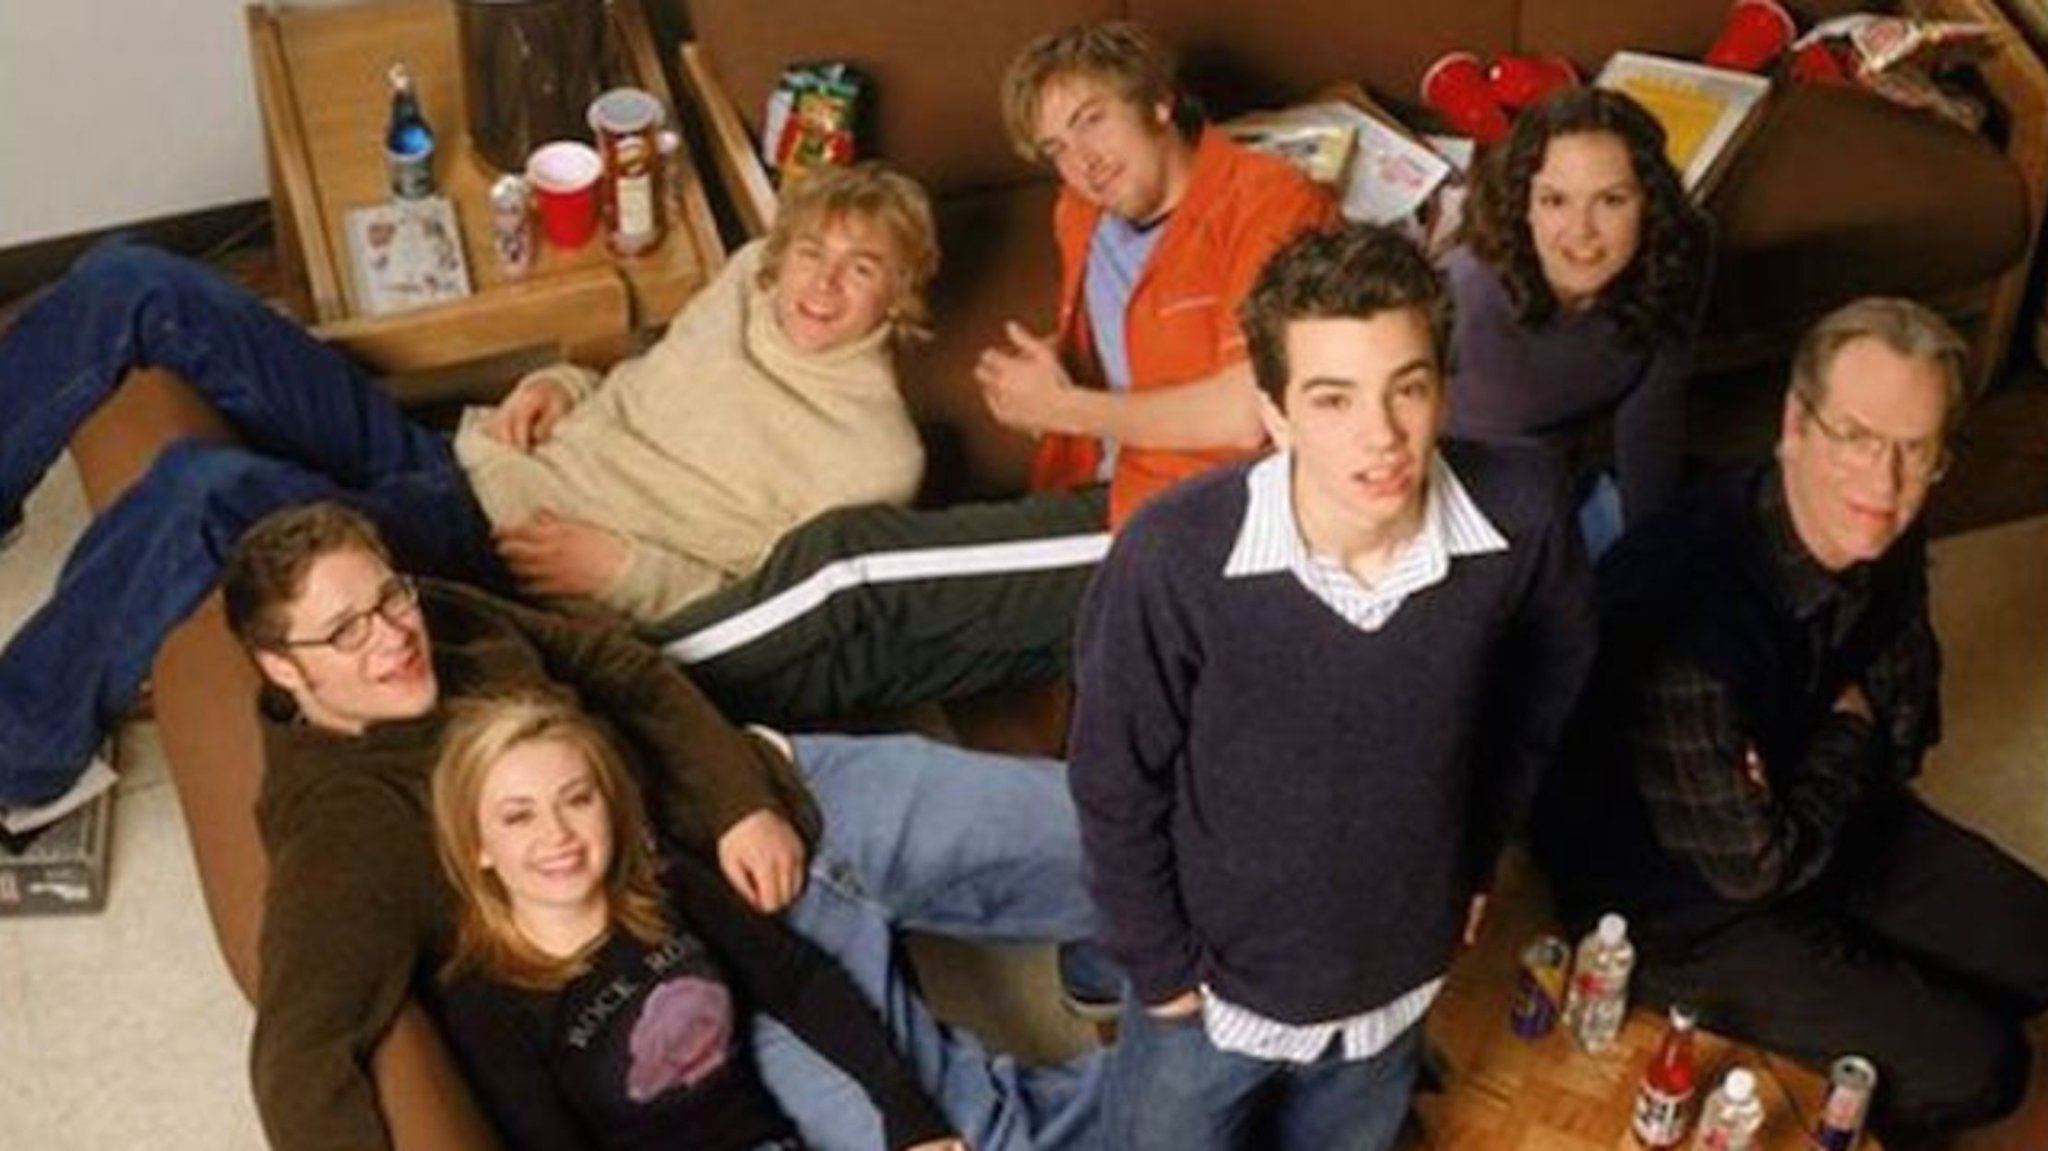 Undeclared: Why Judd Apatow's Other Cult TV Show Is Unfairly Overlooked